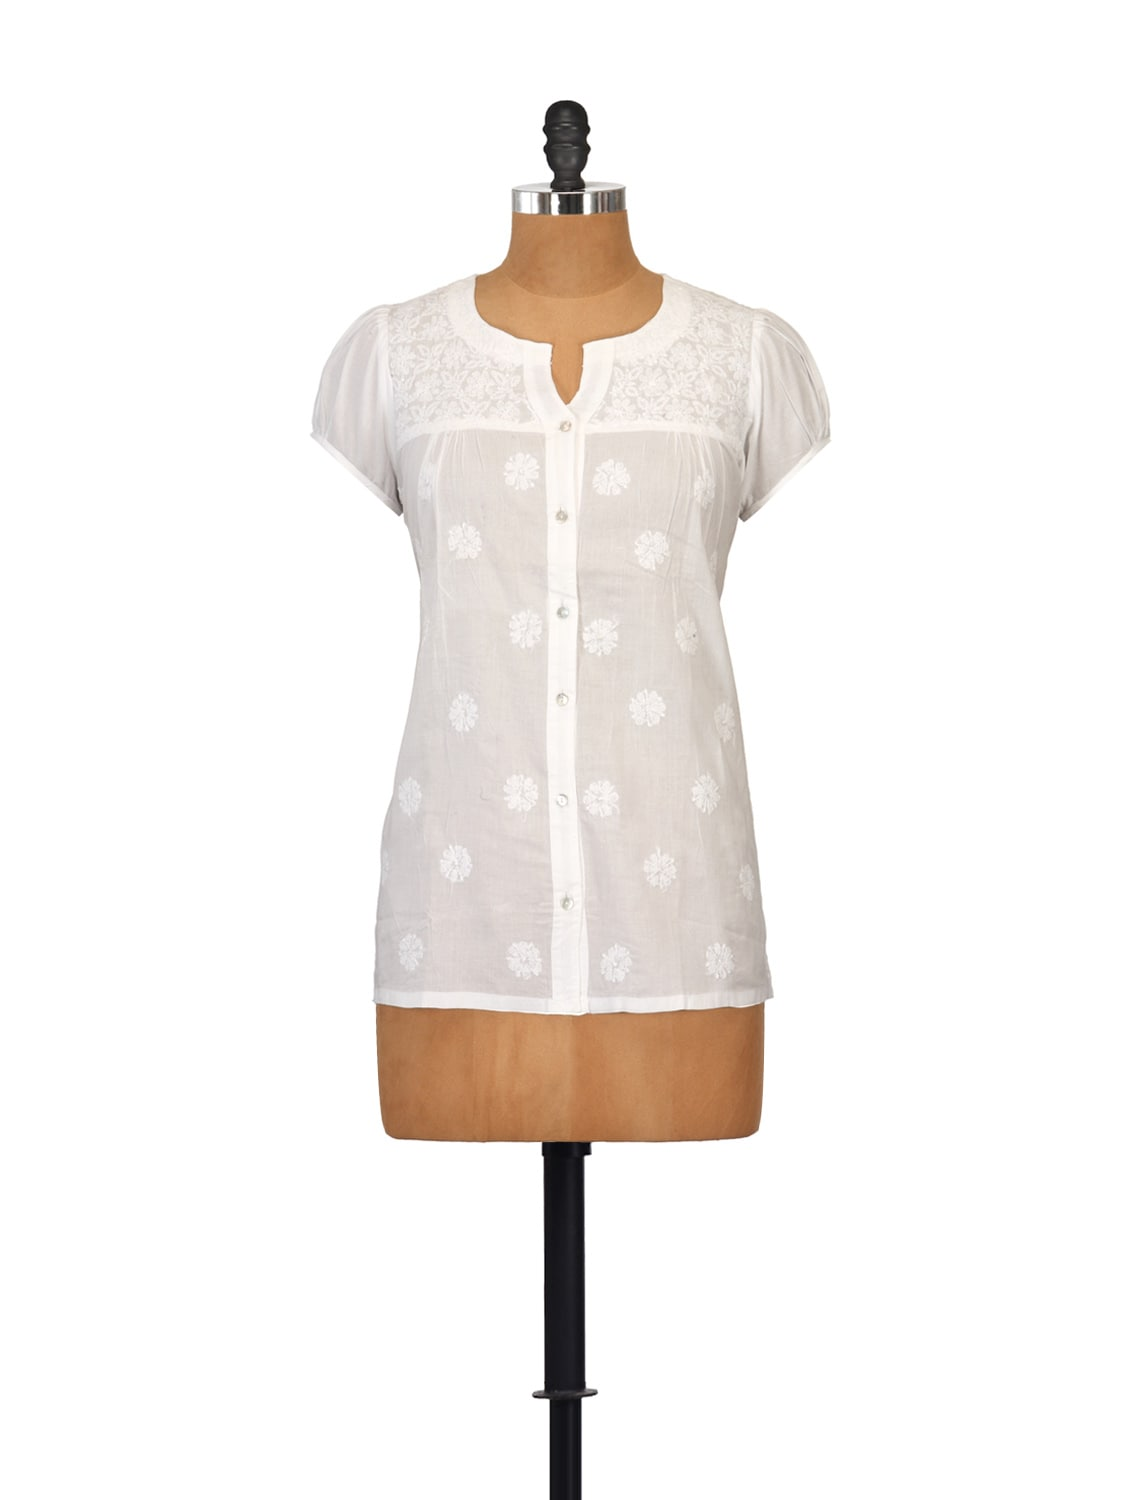 White Buttoned Down Embroidered Shirt - Go Lucknow